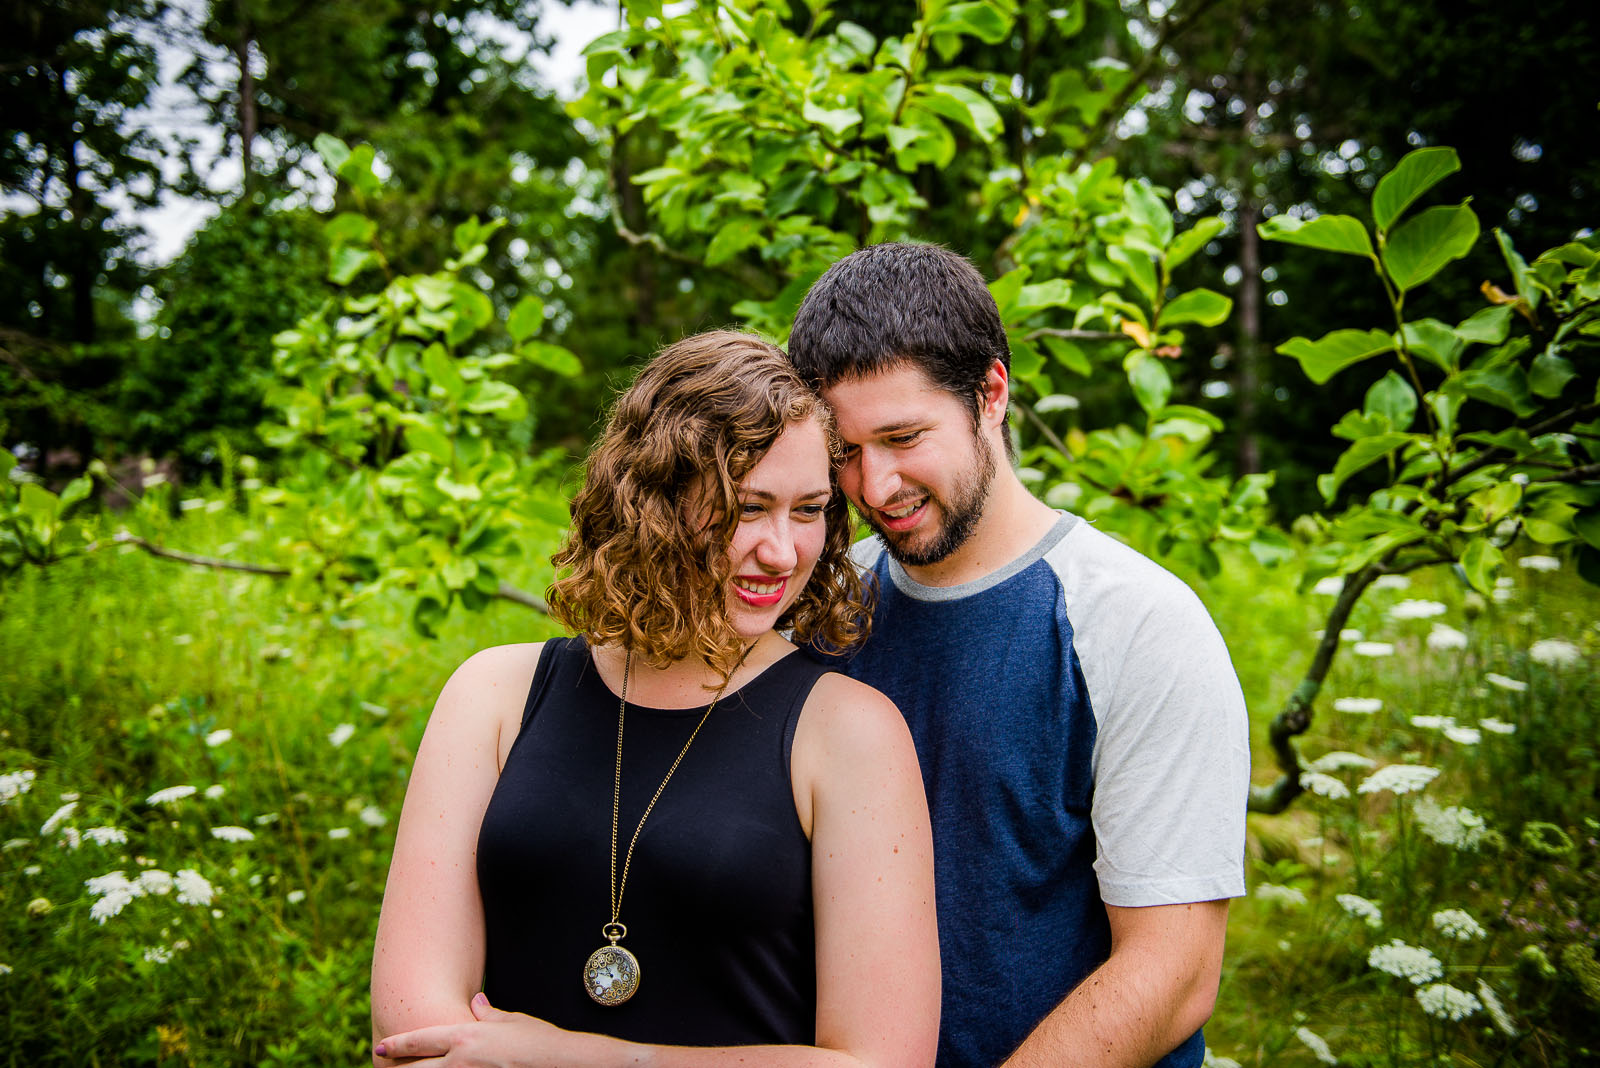 Eric_and_Christy_Photography_Blog_Engagement_Andrea_Clint-25